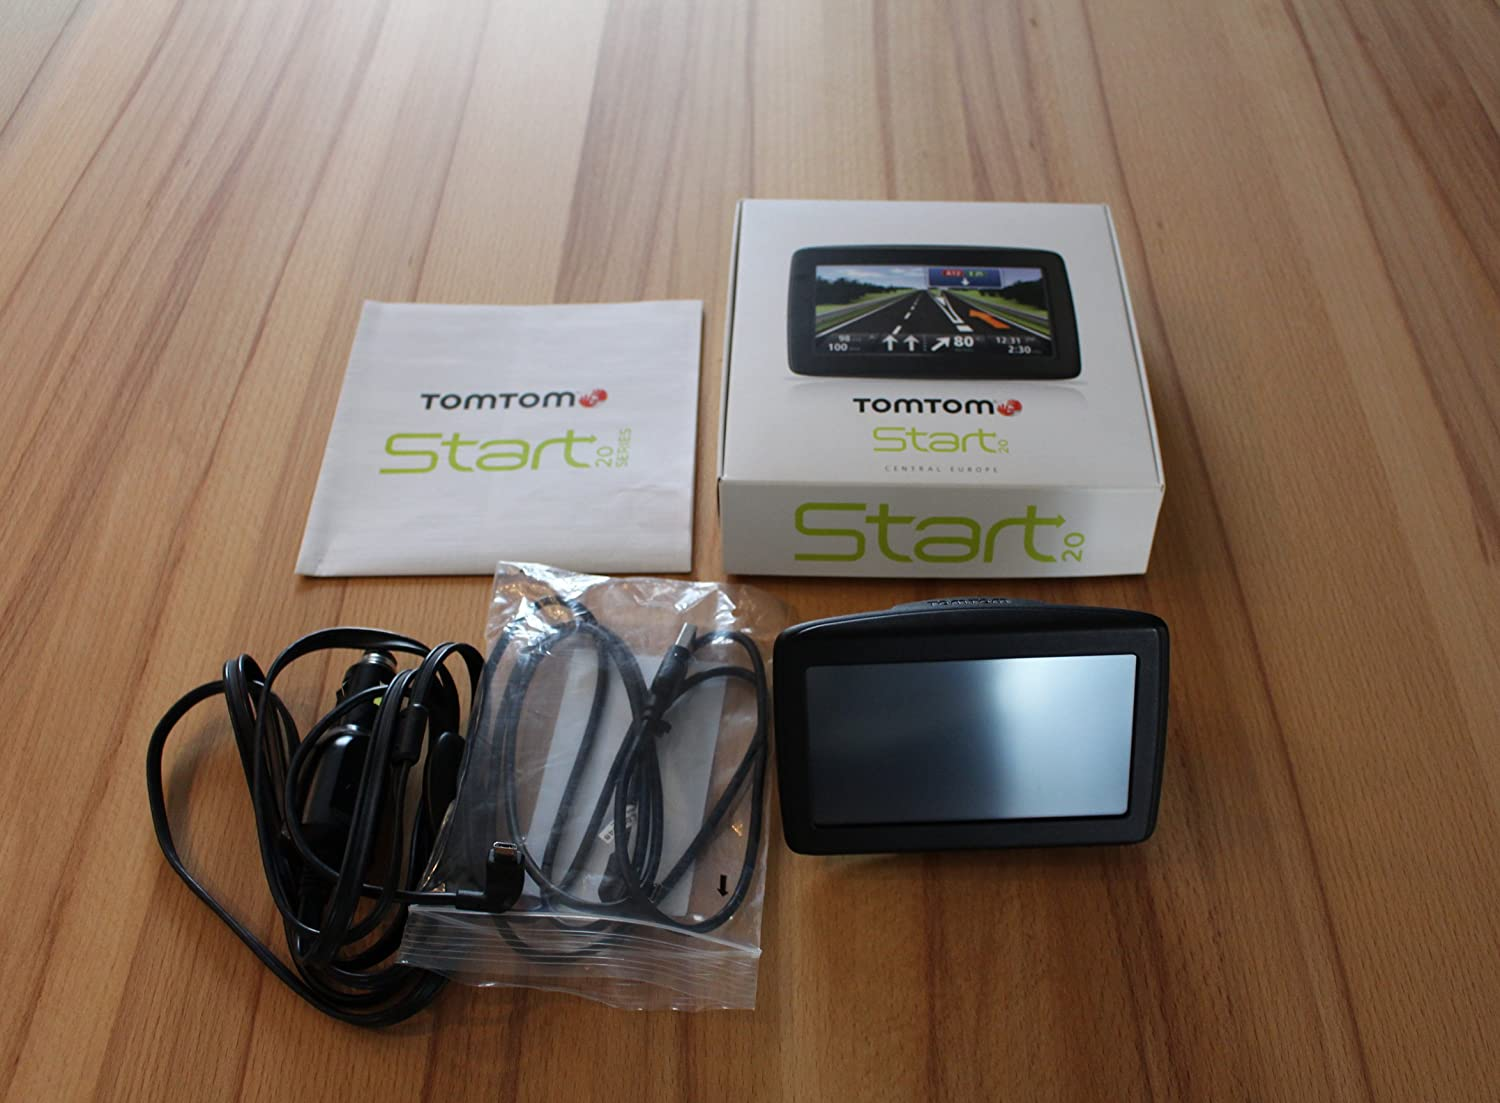 TomTom Start 20 Europe Traffic Navigationssystem (11 cm (4,3 Zoll) Display, 45 Lä nder, TMC, Fahrspur & Parkassistent, IQ Routes, Map Share) schwarz 1EN4.002.02